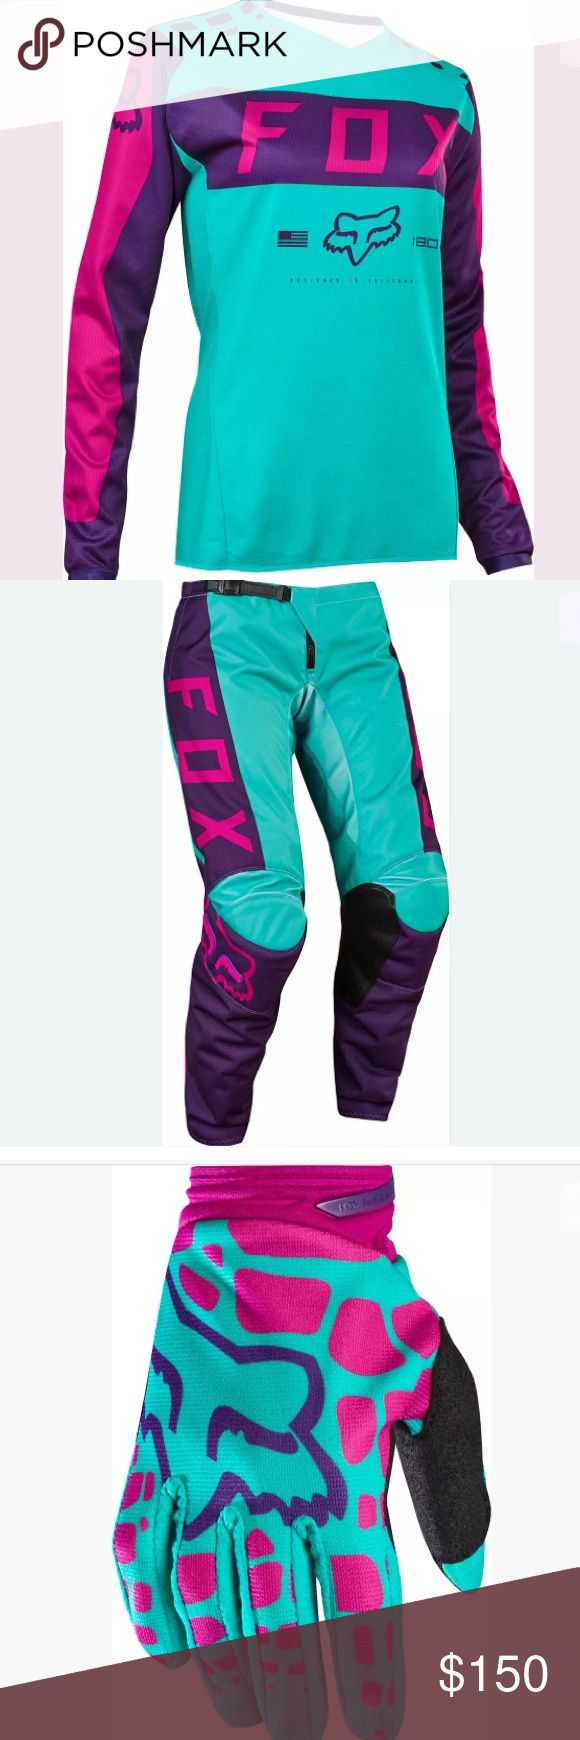 ISO dirt biking gear Doesn't matter what brand or color but I'm in desperate need for dirt biking gear women shirt small, women pants 2 or 4, women gloves small, and if possible women size 7 boots, small helmet and chest protection Fox Tops Tees - Long Sleeve